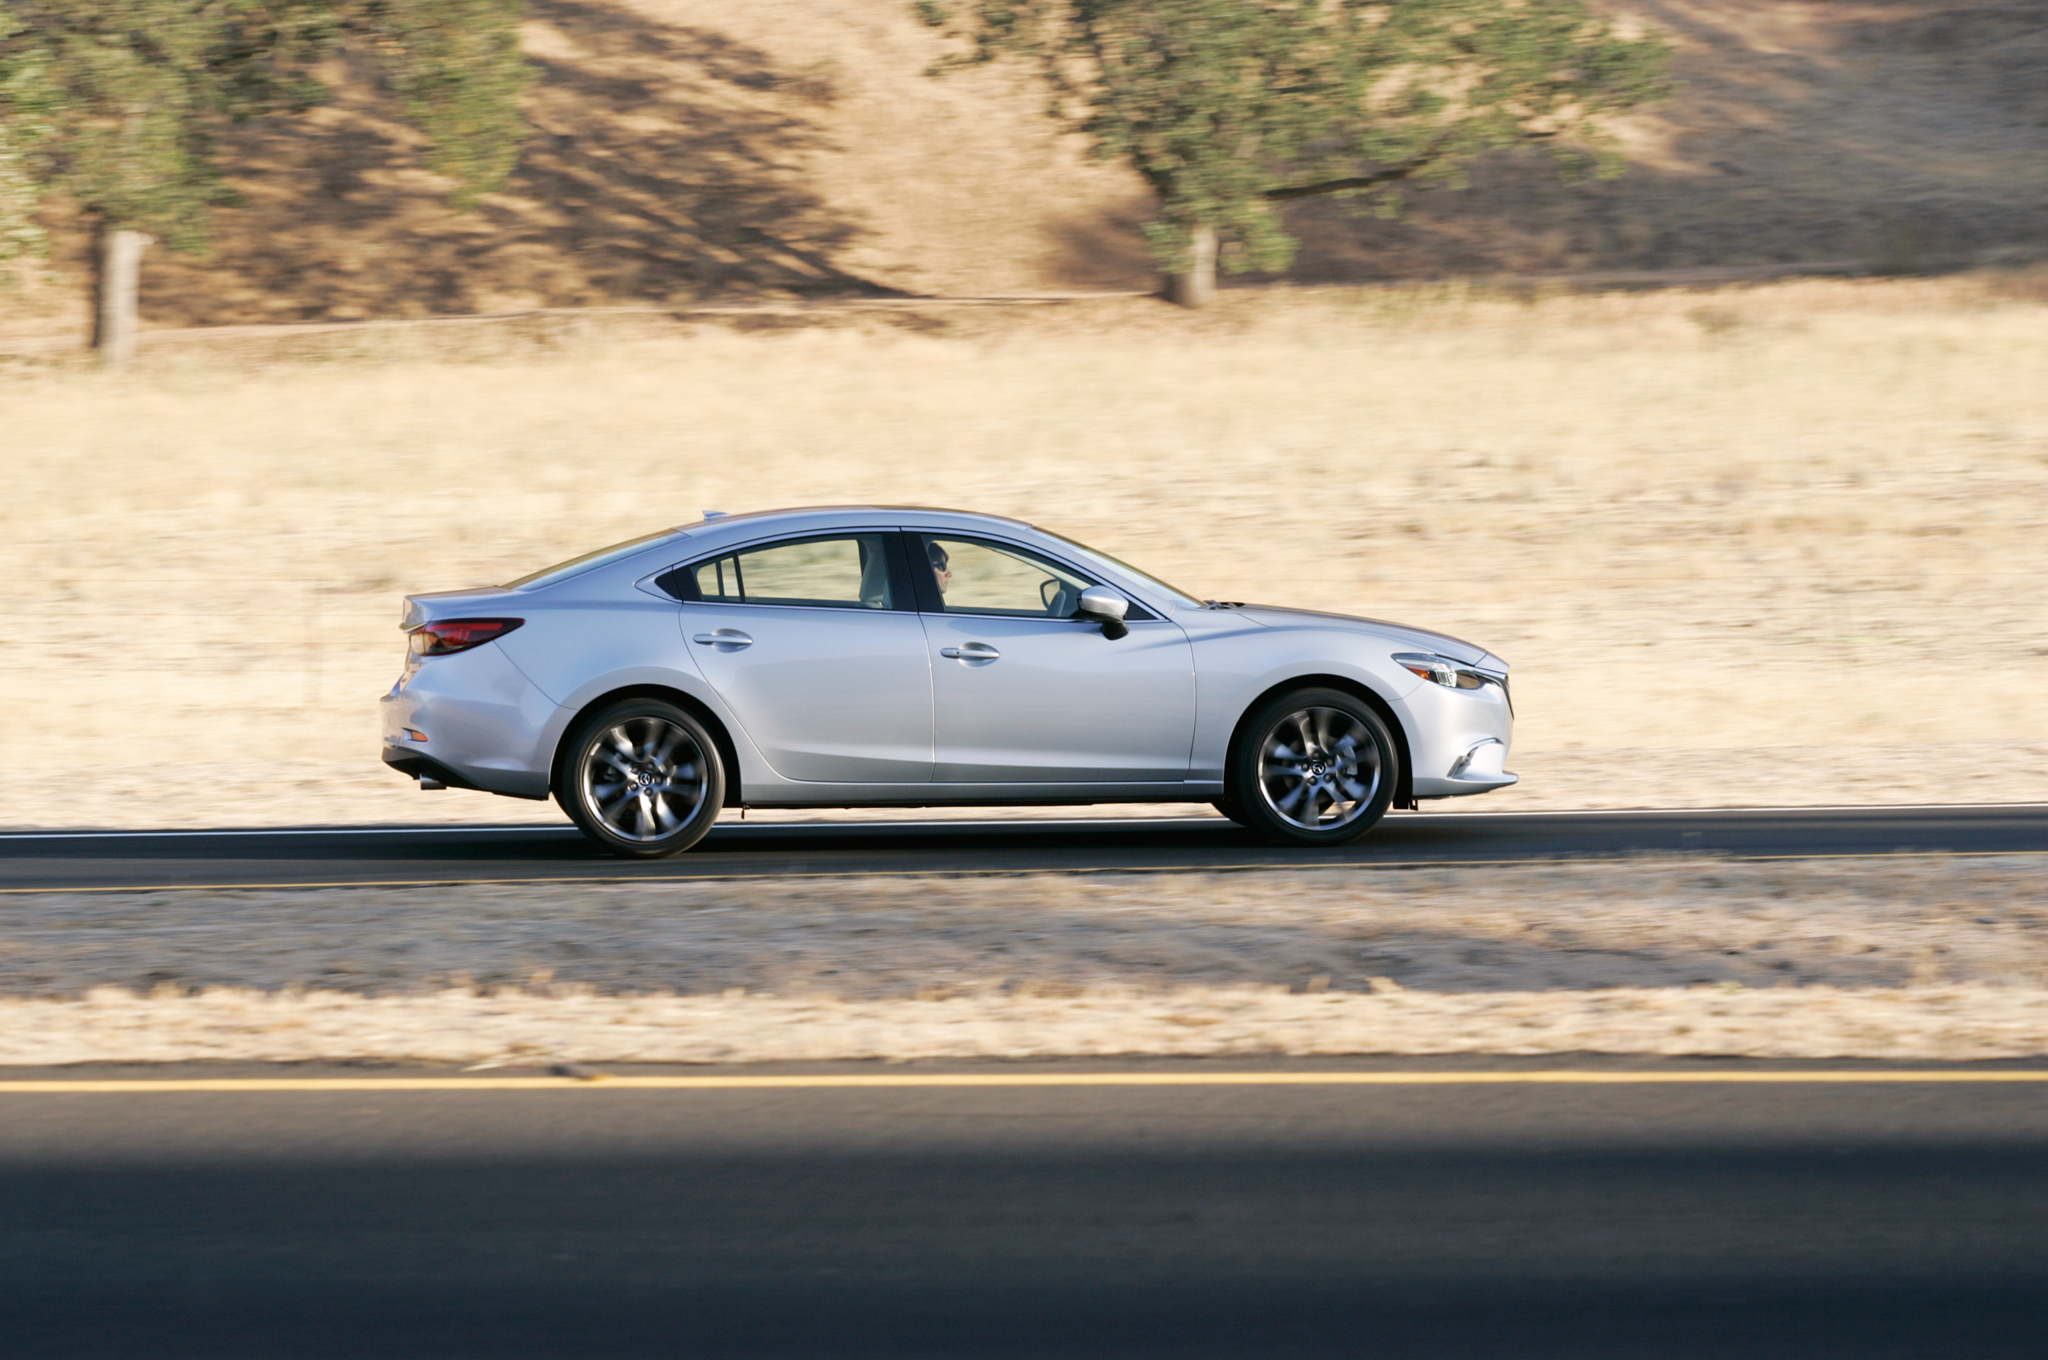 Mazda Upgrades The Mazda6 Model With New Technology And Luxury Features